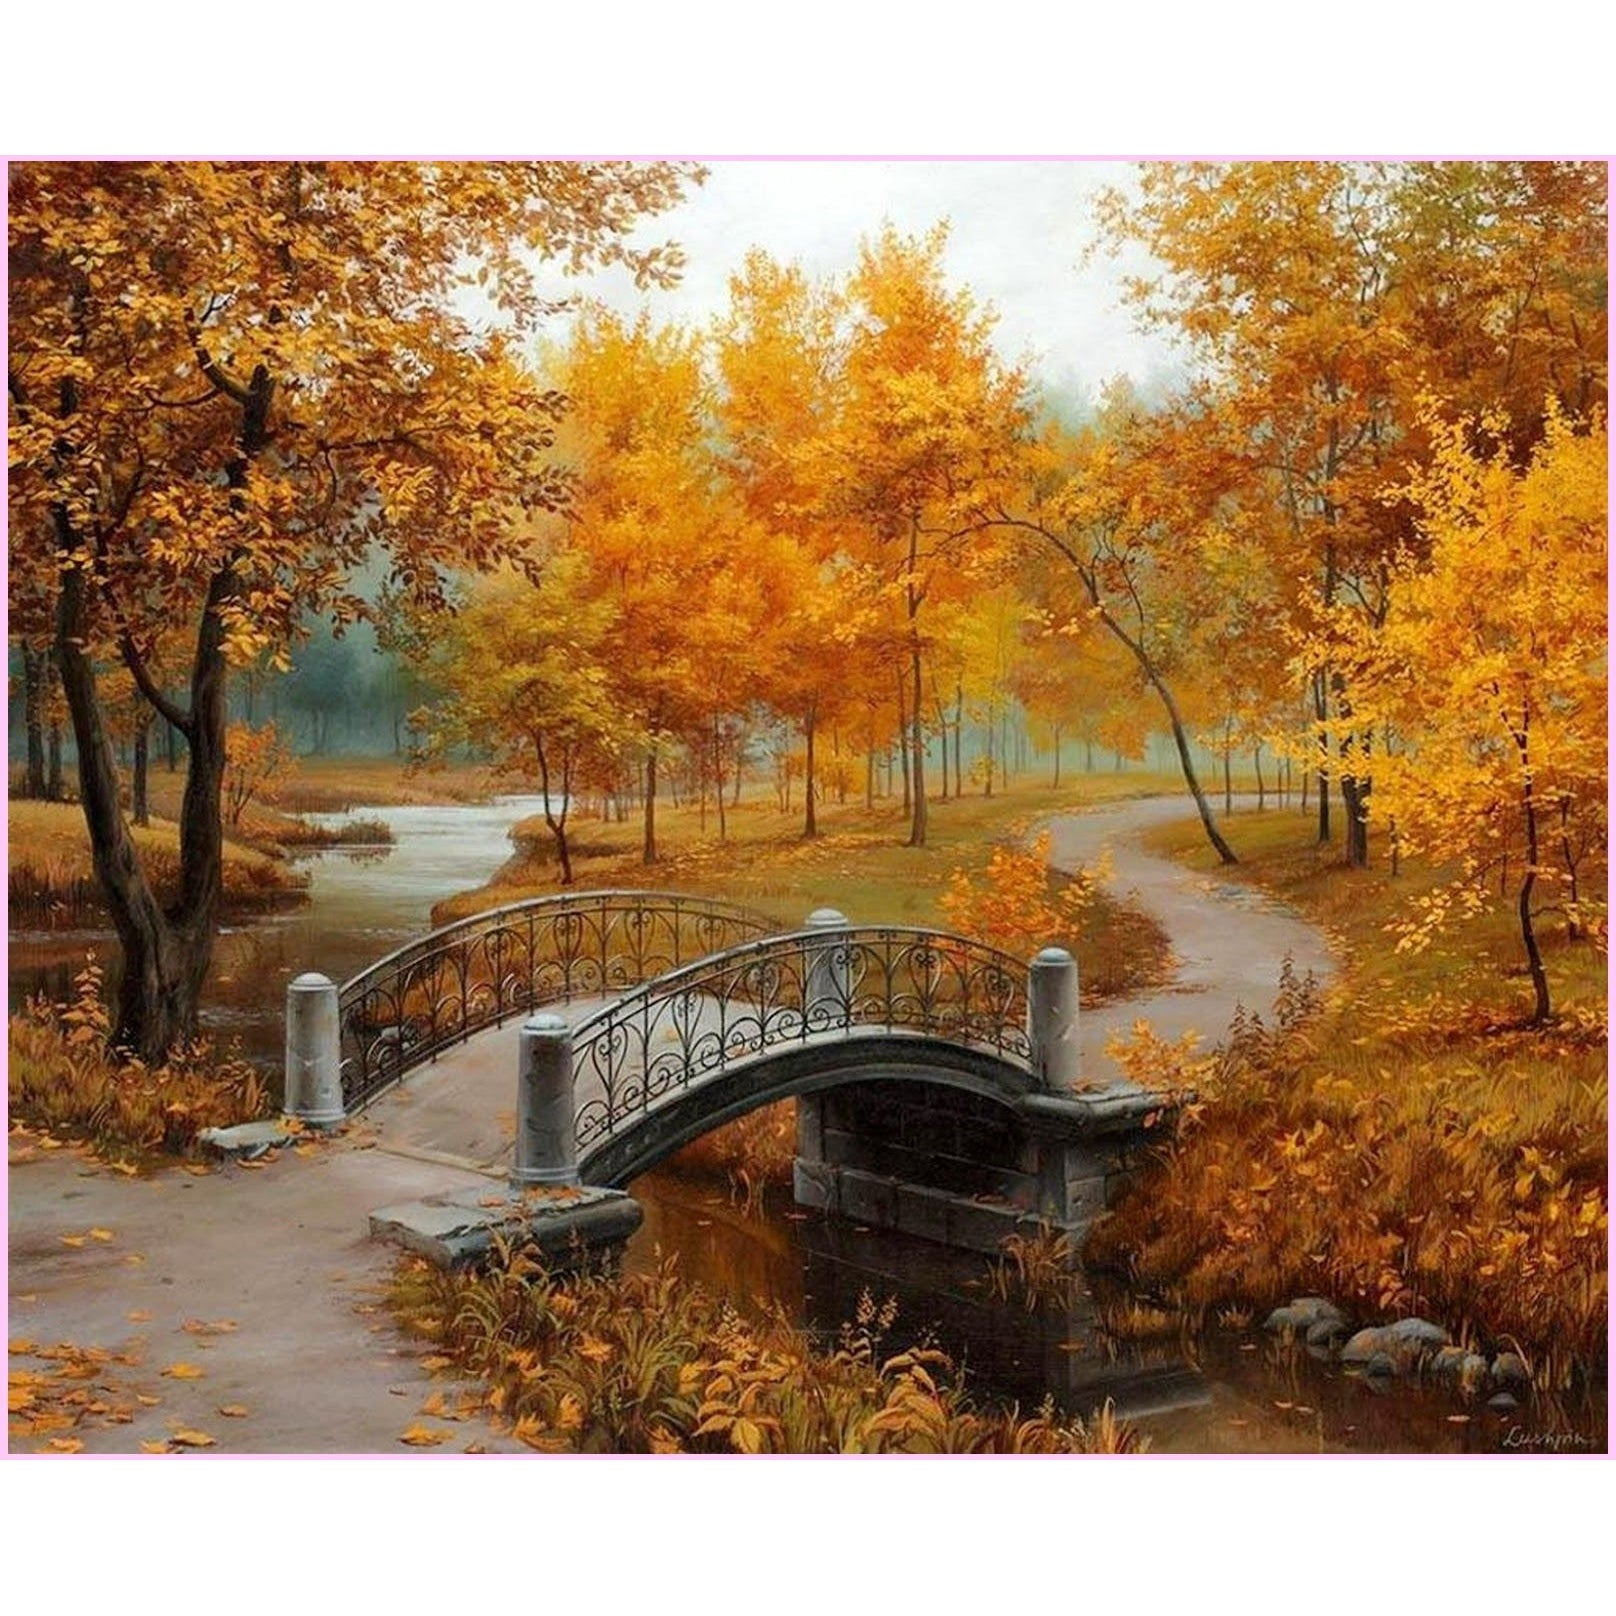 Strolling through the Park in Fall-Diamond Painting Kit USPS-30x40cm (12x16 in)-Square-Heartful Diamonds